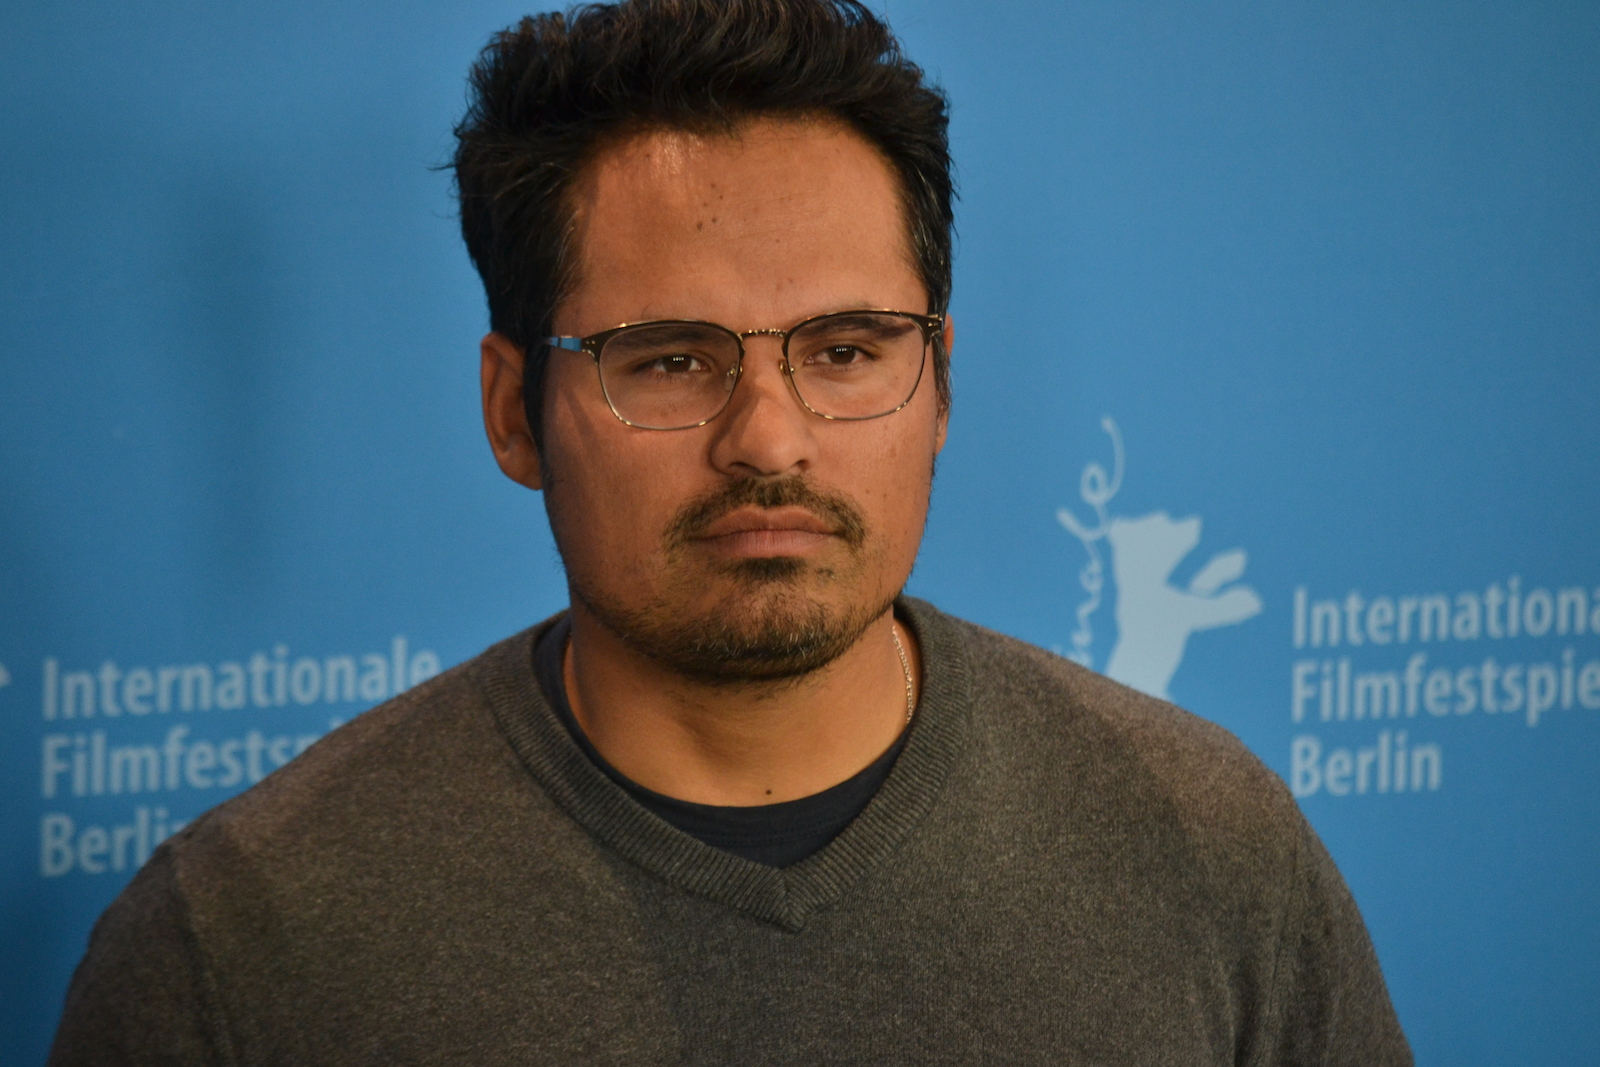 Berlino 2016: un primo piano di Michael Peña photocall di War On Everyone